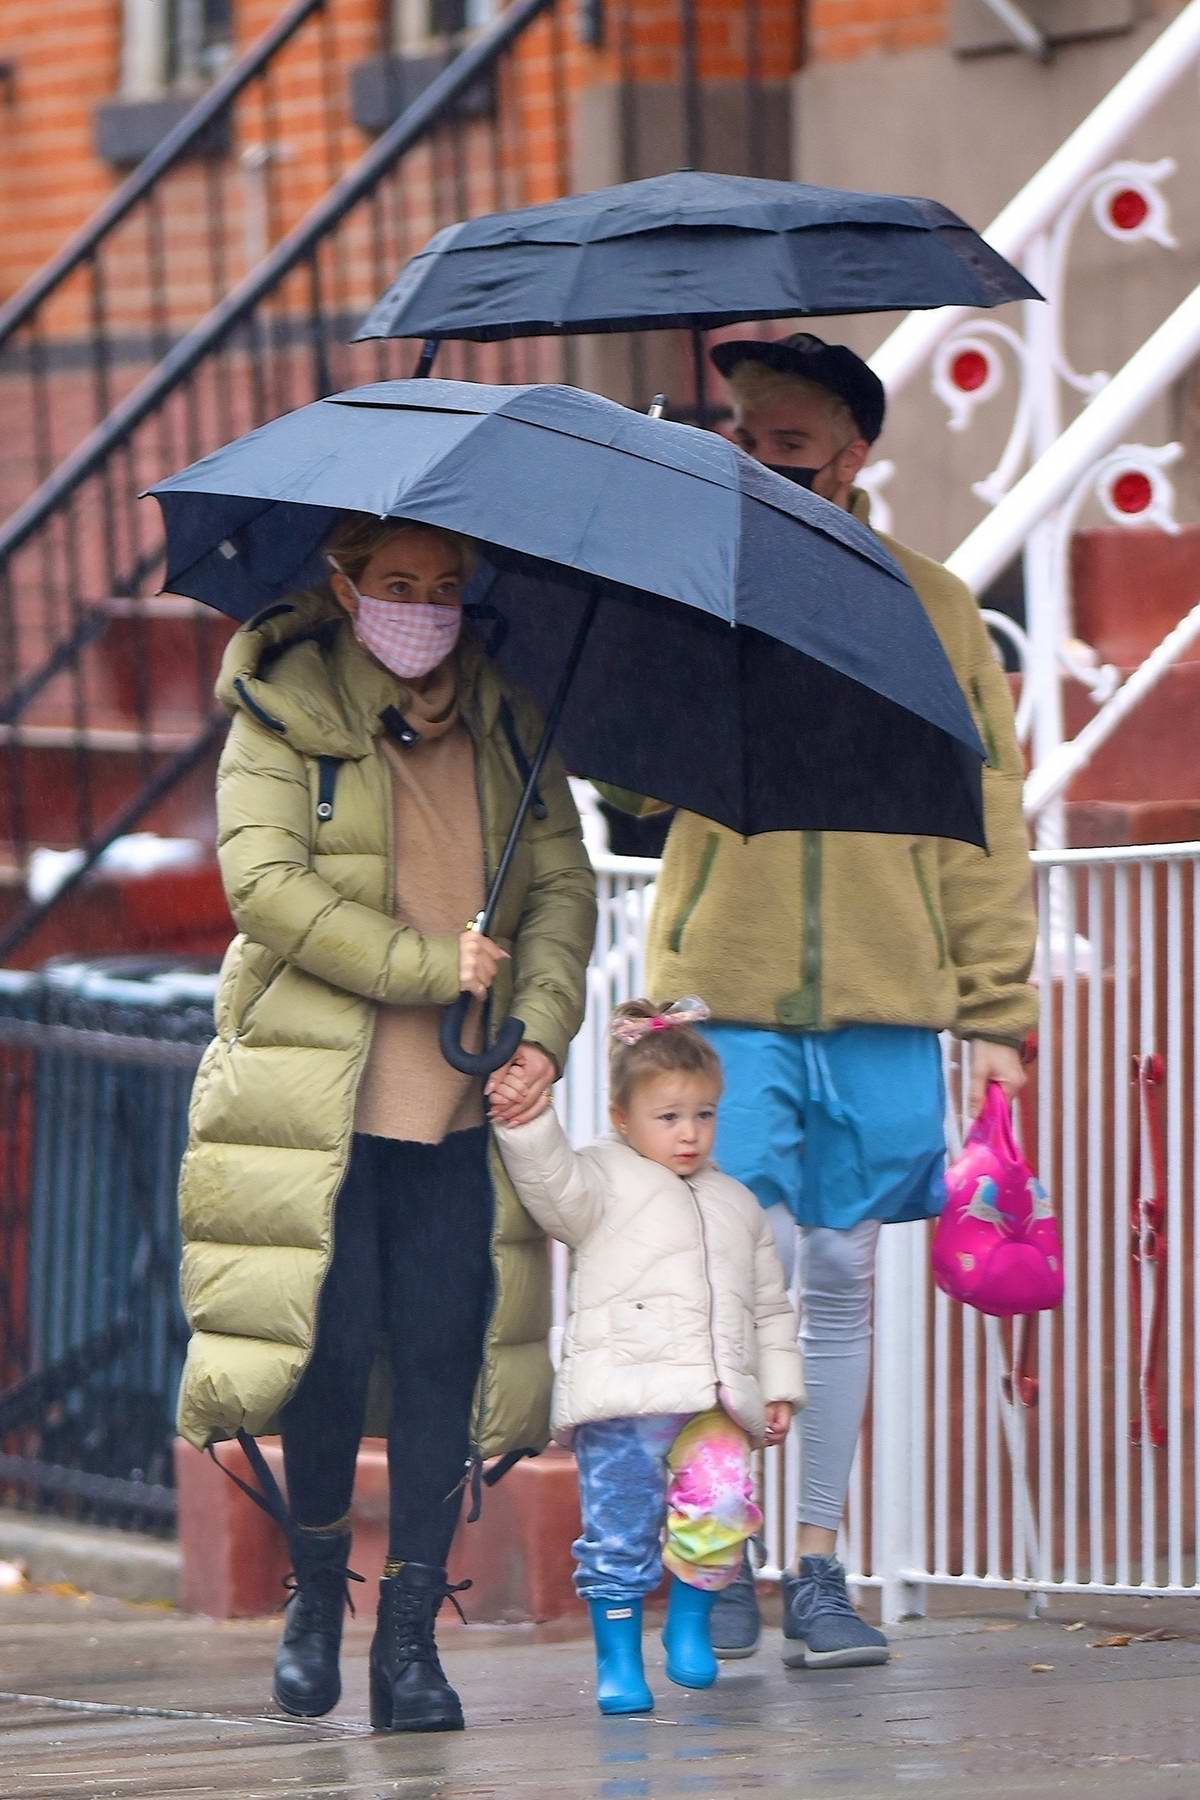 Hilary Duff bundles up in a puffer jacket as she takes her family out for breakfast in New York City